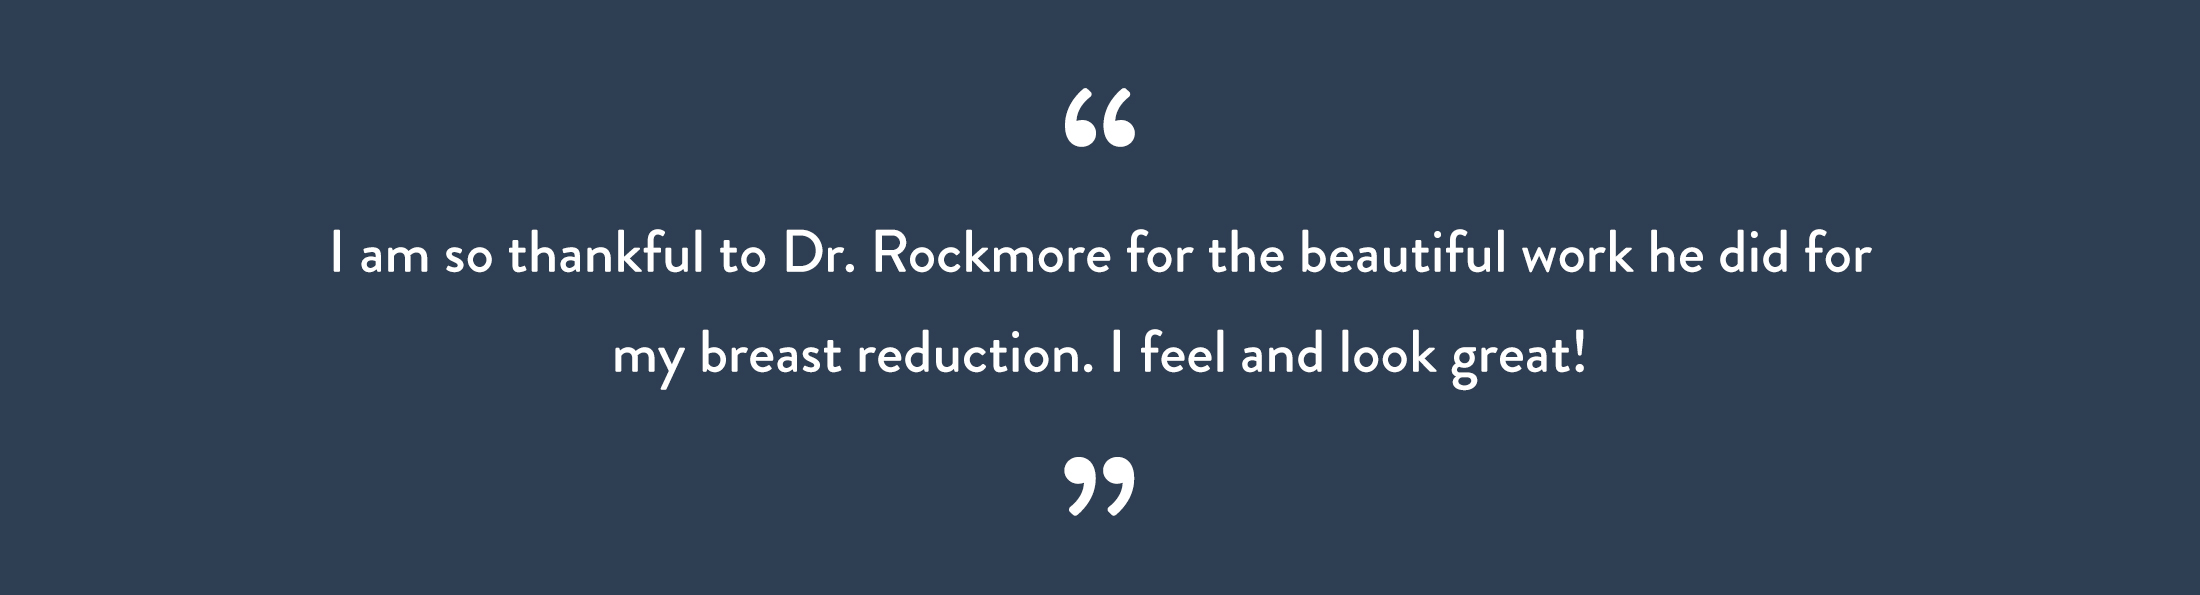 I am so thankful to Dr. Rockmore for the beautiful work he did for my breast reduction. I feel and look great!